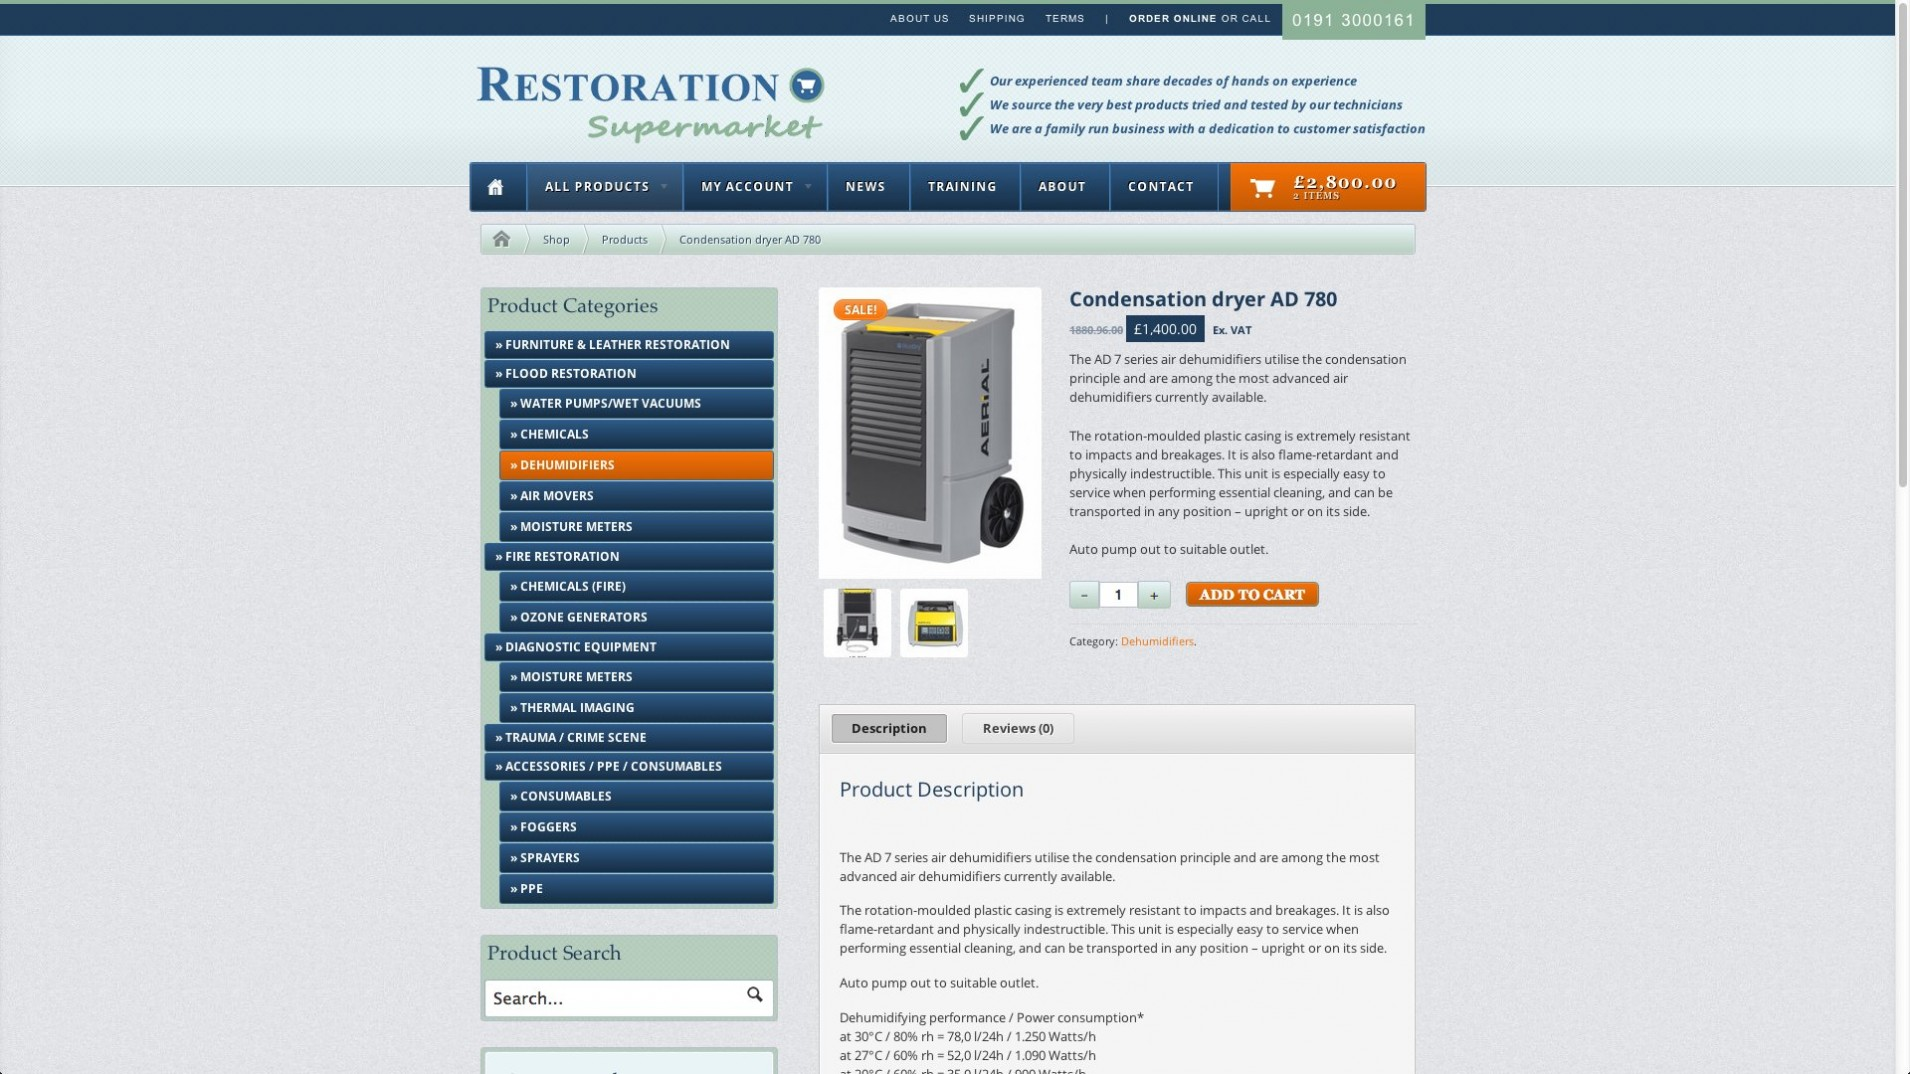 Screen Shot 2013 12 23 at 16.34.25 1 - E-commerce webdesign for cleaning equipment supplier